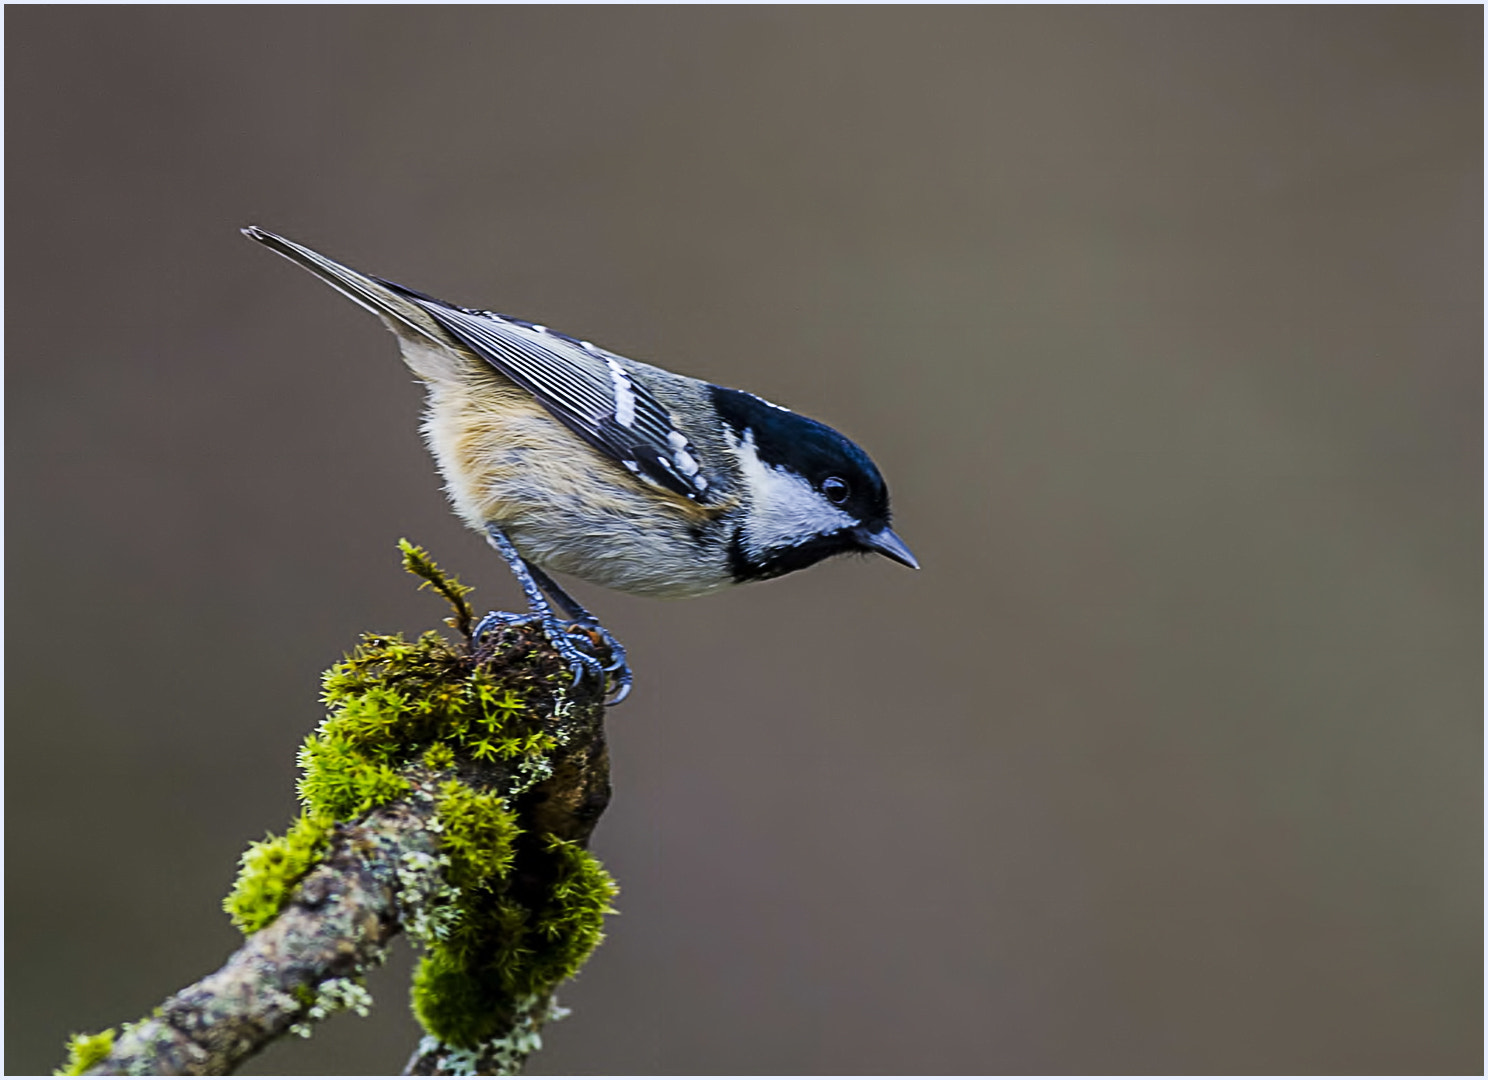 Photograph Coal Tit by allan squires on 500px